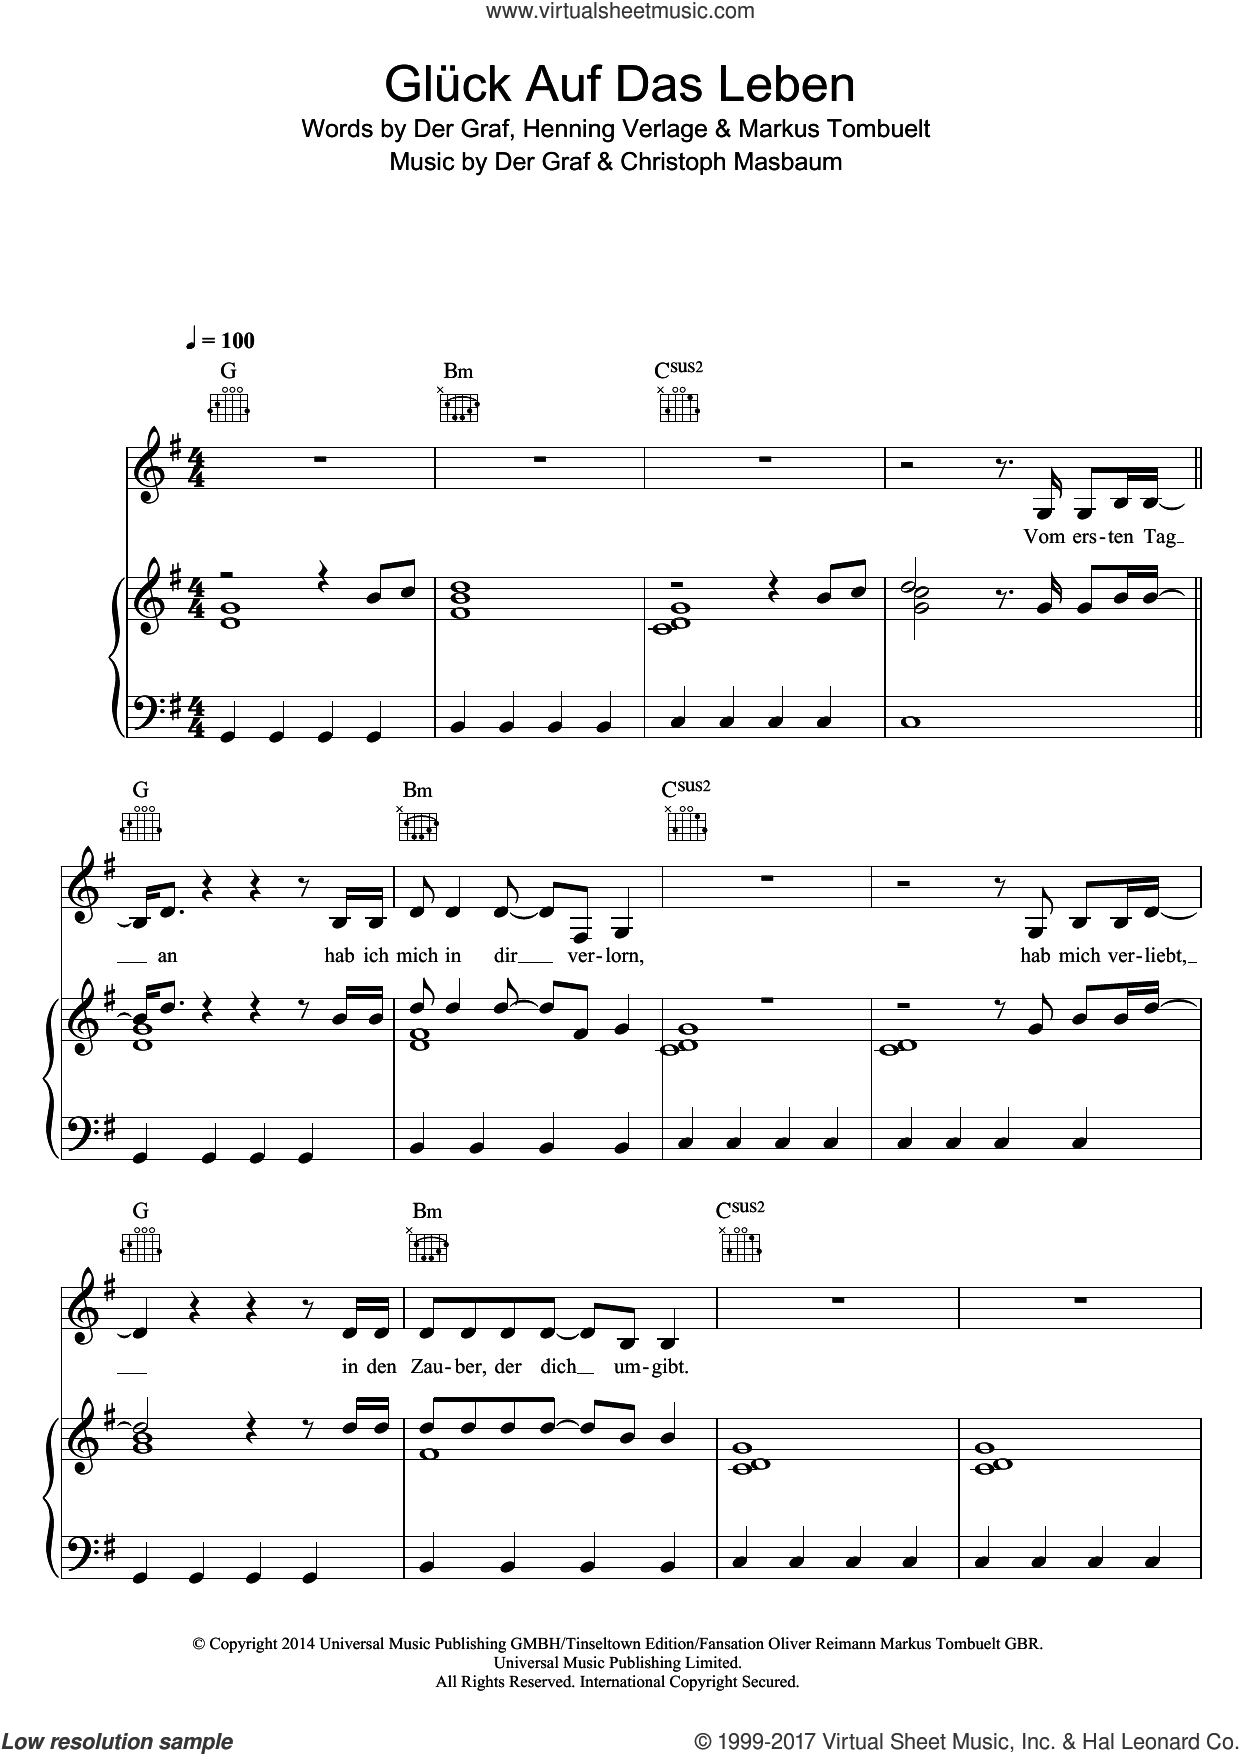 Gluck Auf Das Leben sheet music for voice, piano or guitar by Unheilig, Christoph Masbaum and Der Graf, intermediate skill level